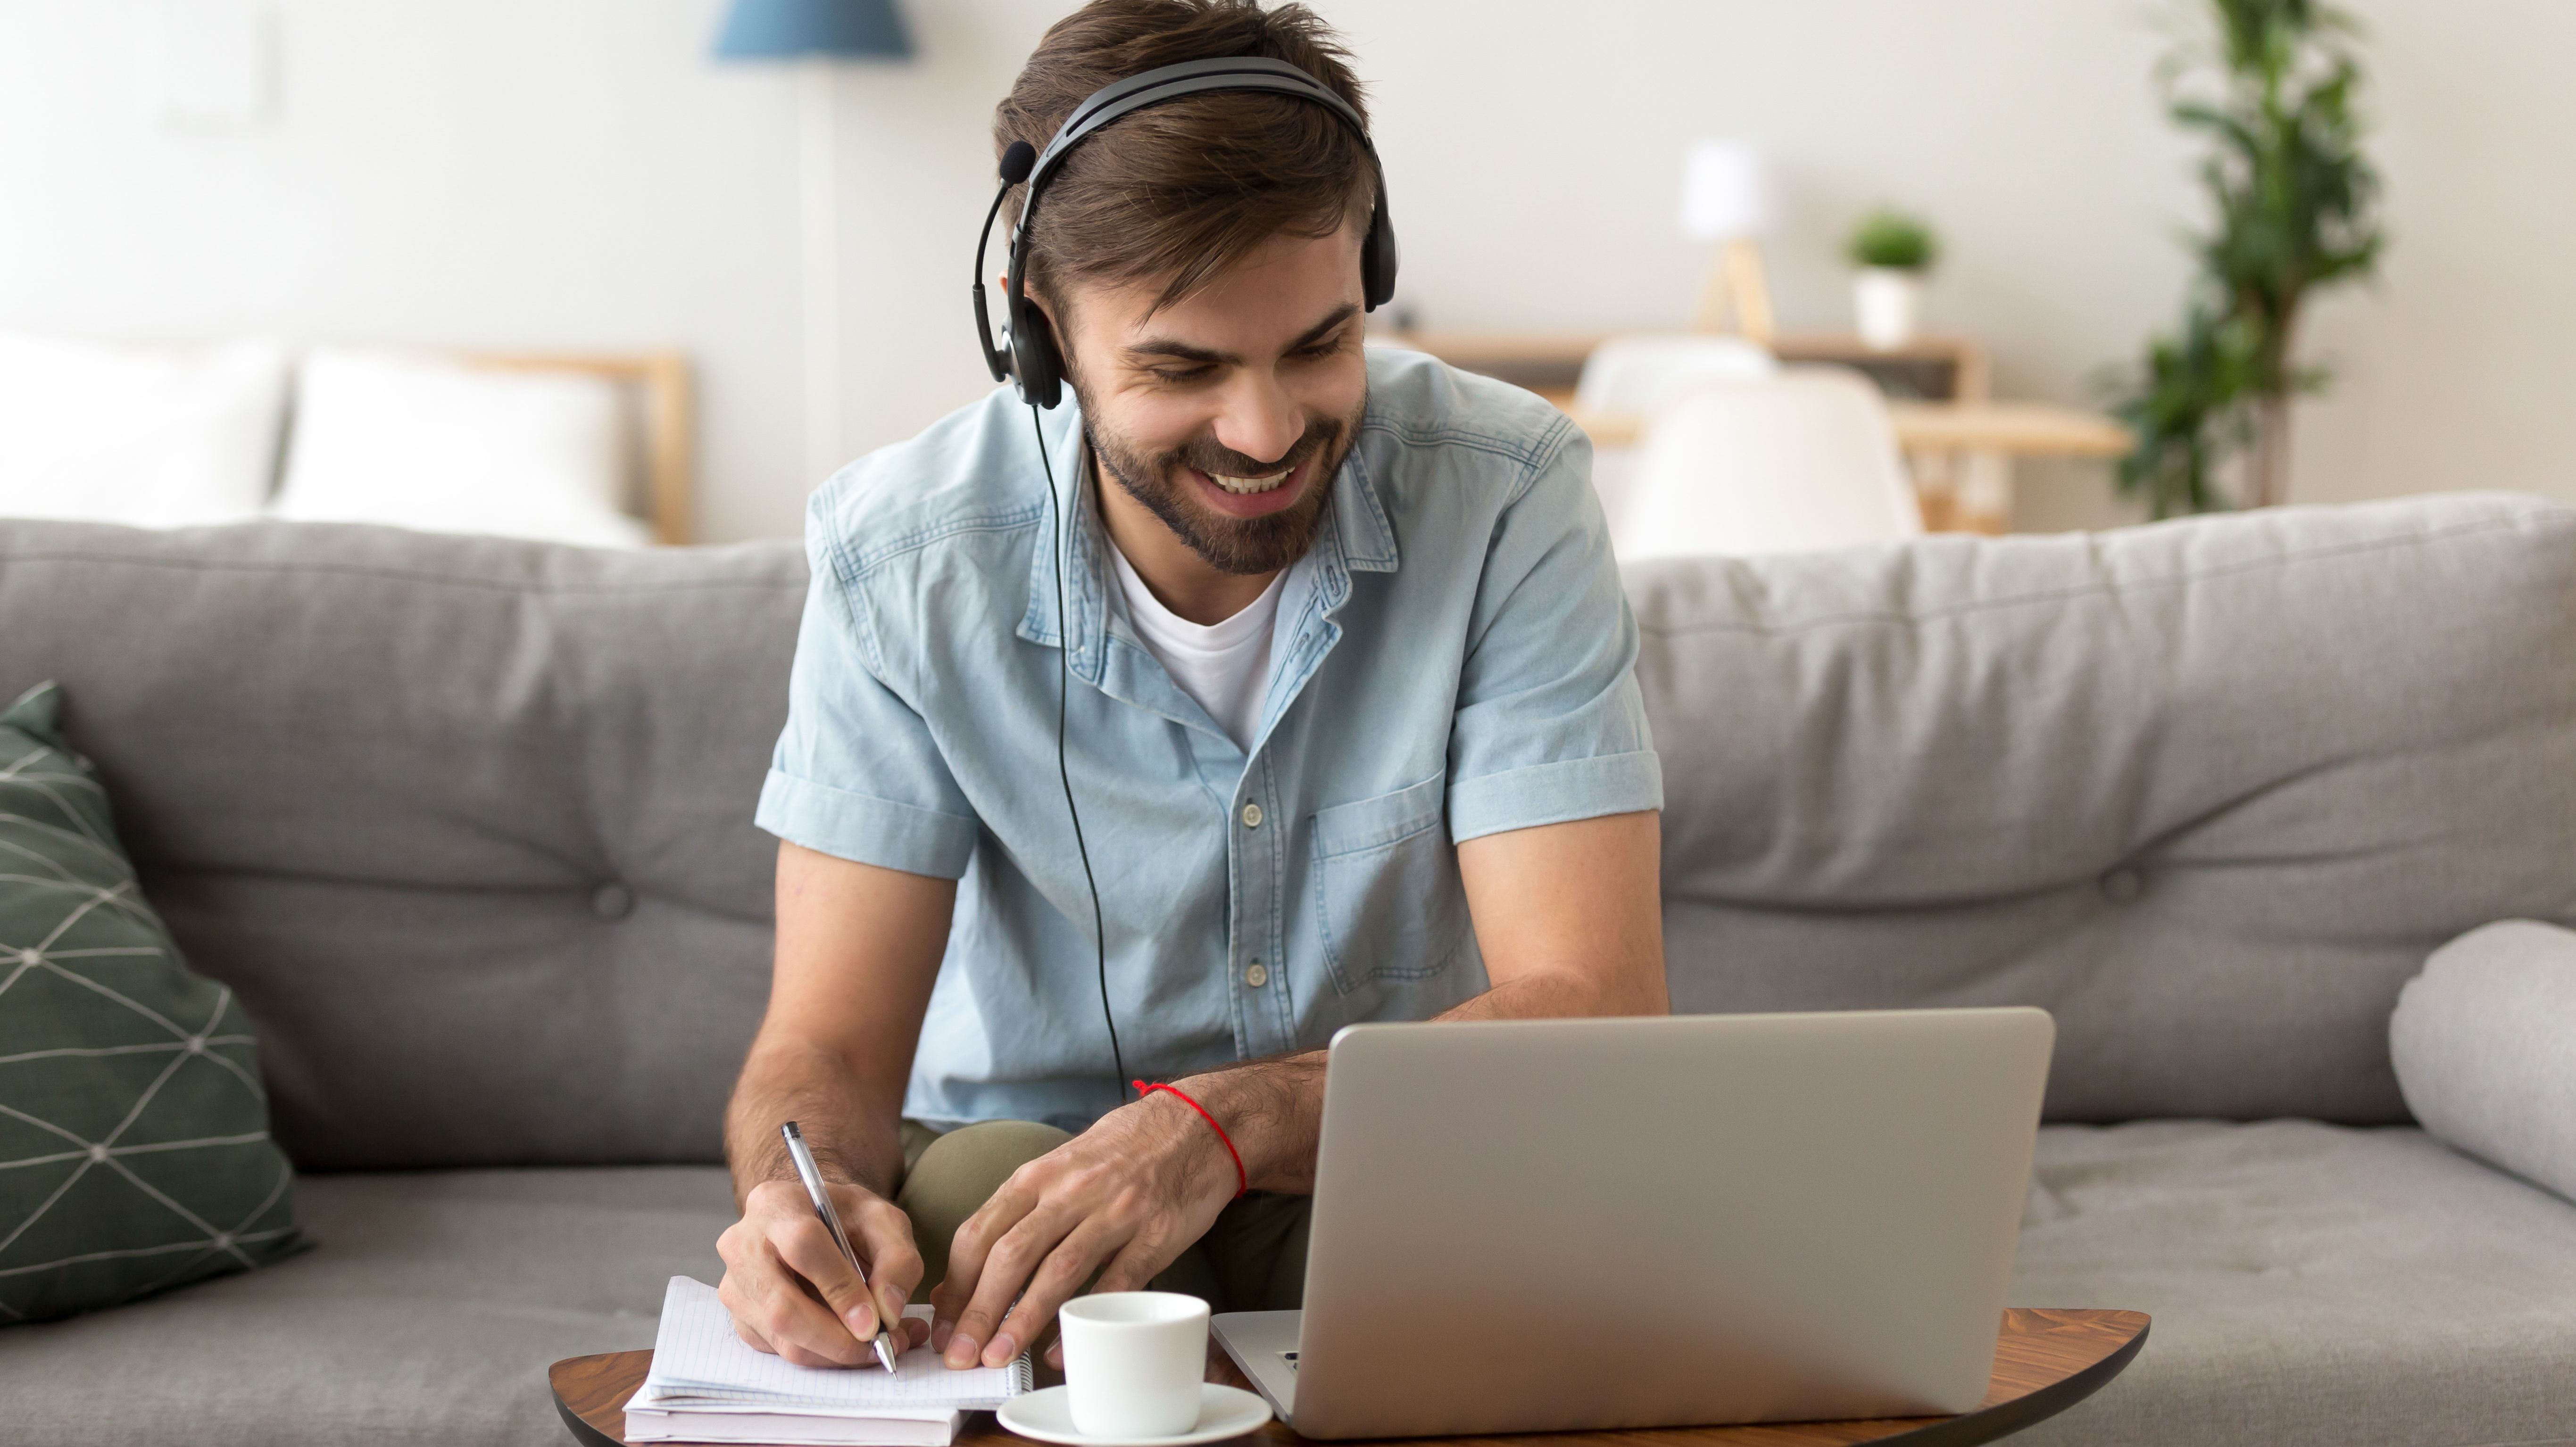 10 Illuminating Online Courses You Can Take in August